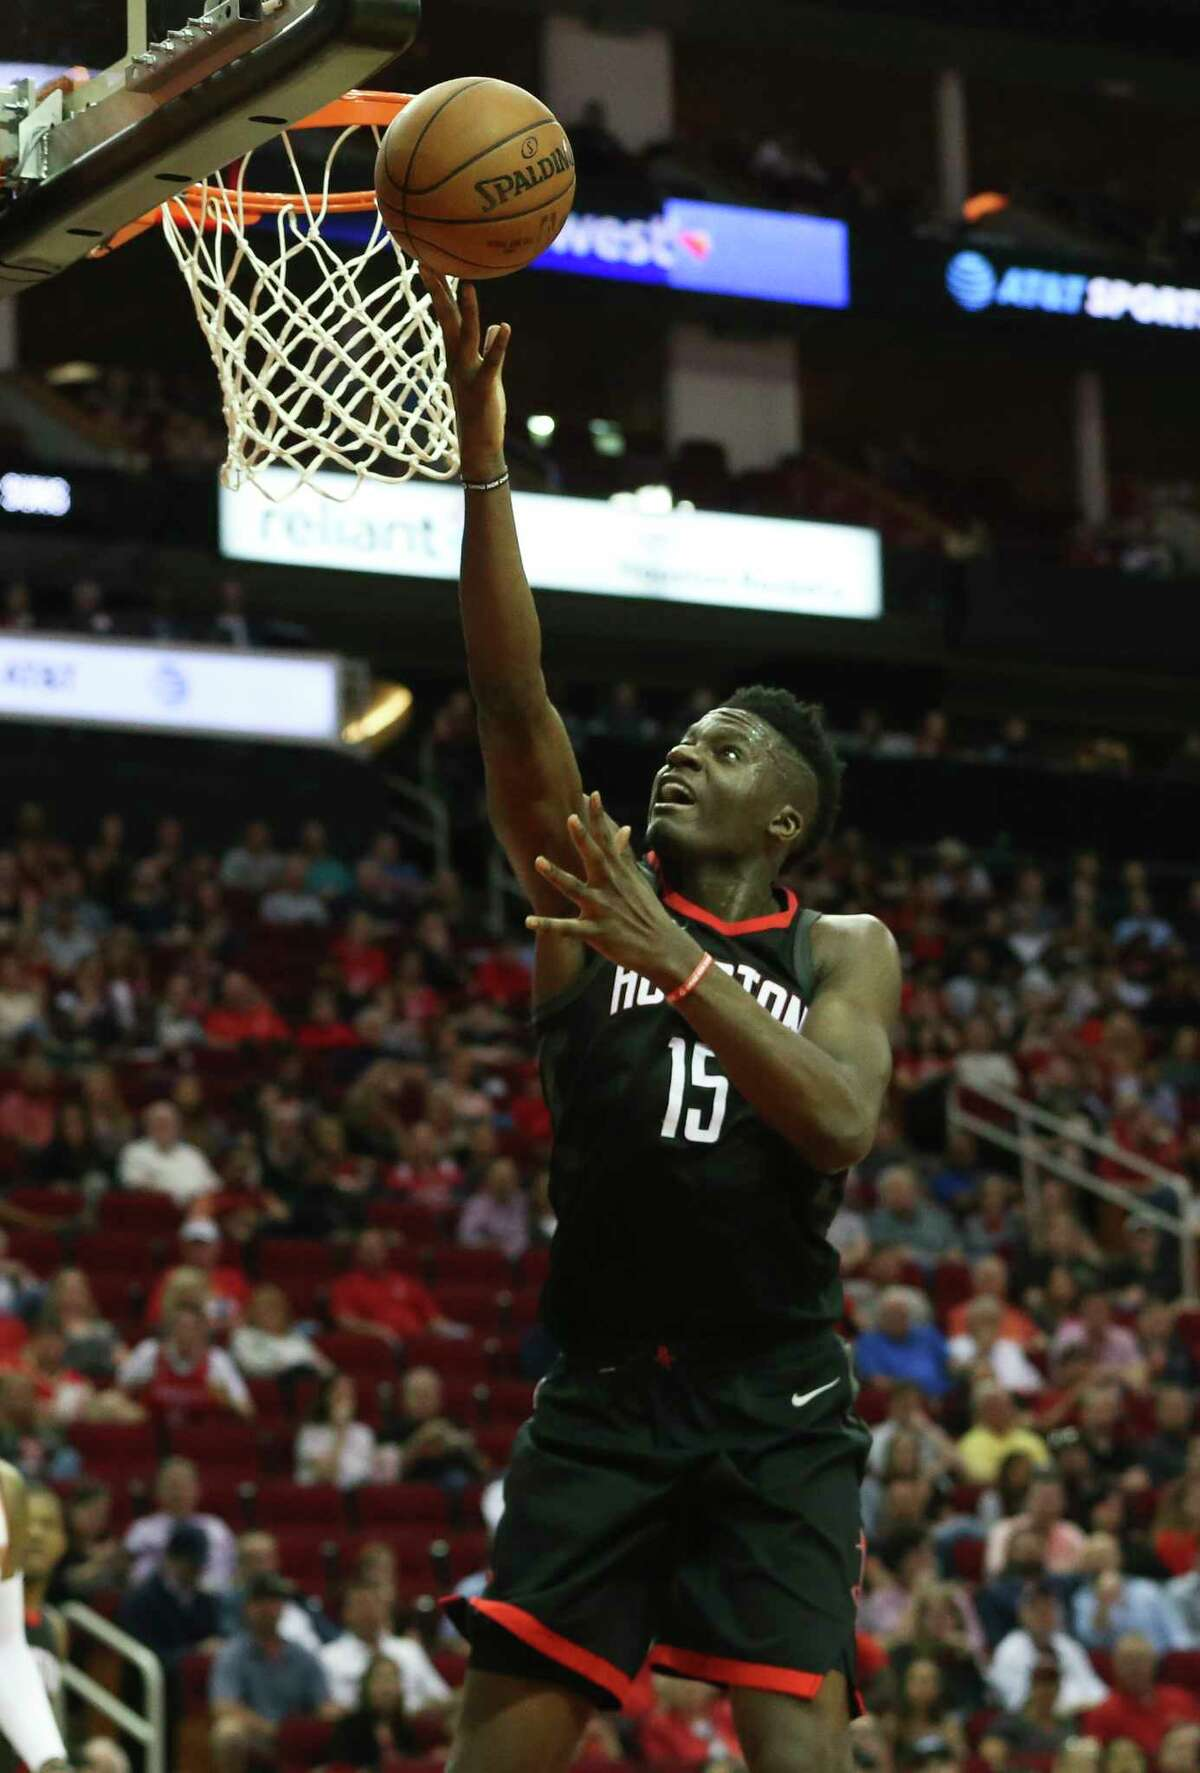 Houston Rockets center Clint Capela (15) attempts the basket during the third quarter of the NBA game against the Phoenix Suns at Toyota Center on Friday, March 30, 2018, in Houston. The Houston Rockets defeated the Phoenix Suns 104-103 the last second of the game.